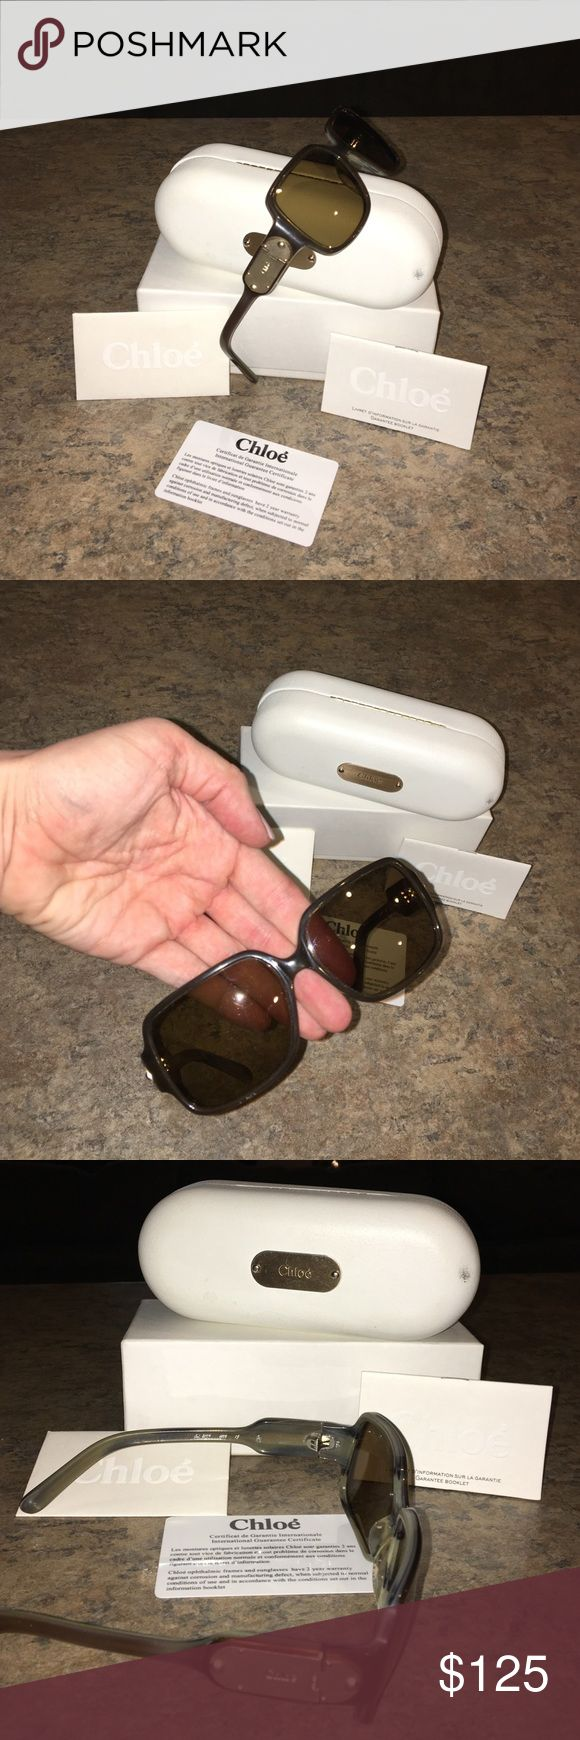 Chloe brand sunglasses. Chloe brand sunglasses. Chic oversized polar lensed glasses. Non prescription. Gold plated side with Chloe embossed emblem. Comes with case. Dust cloth. Cards. Papers. Authenticity. Used. No scratches on lenses. Box too. Very lovely. chloe Accessories Sunglasses